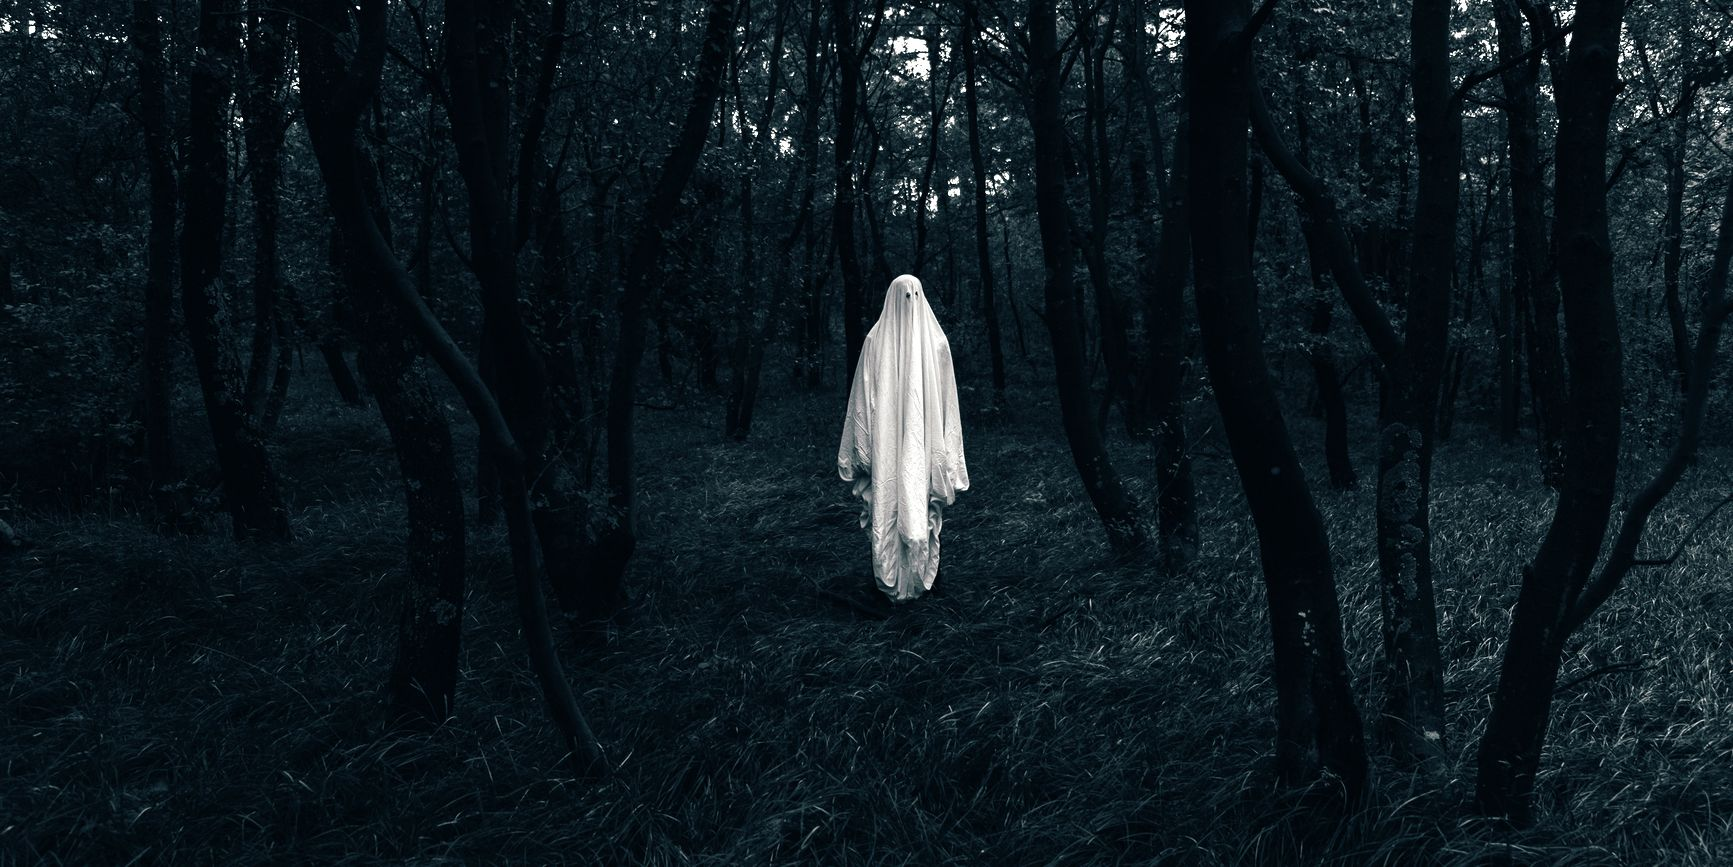 The Most Terrifying, Nightmare-Inducing Ghost Videos on the Internet